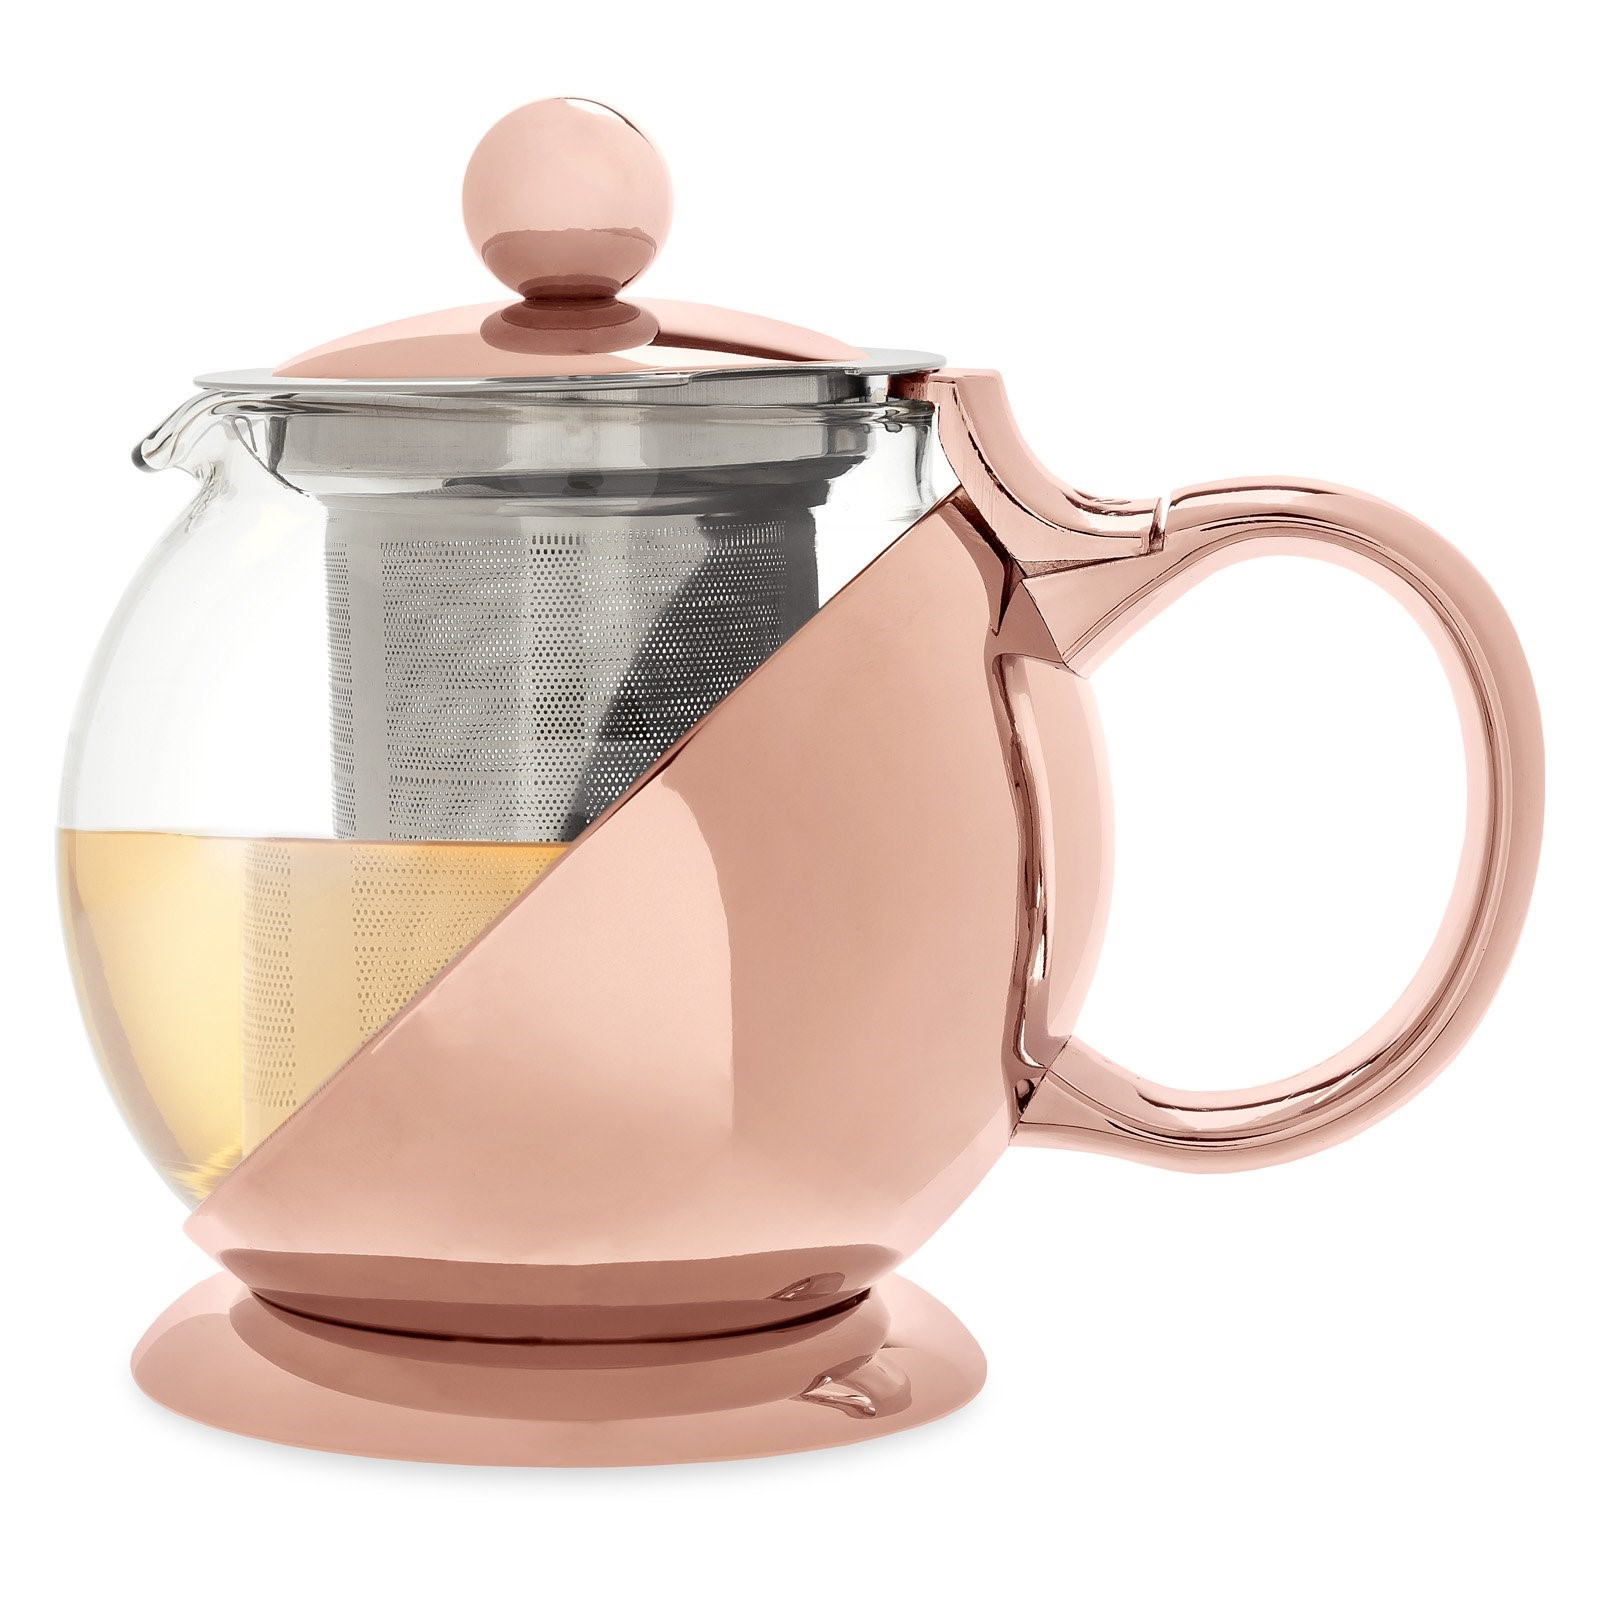 11. Pinky Up Shelby Teapot and Infuser - Have a tea-lover in your life? Add a posh touch to their kitchen with this teapot and infuser that's sure to elevate their tea time experience.